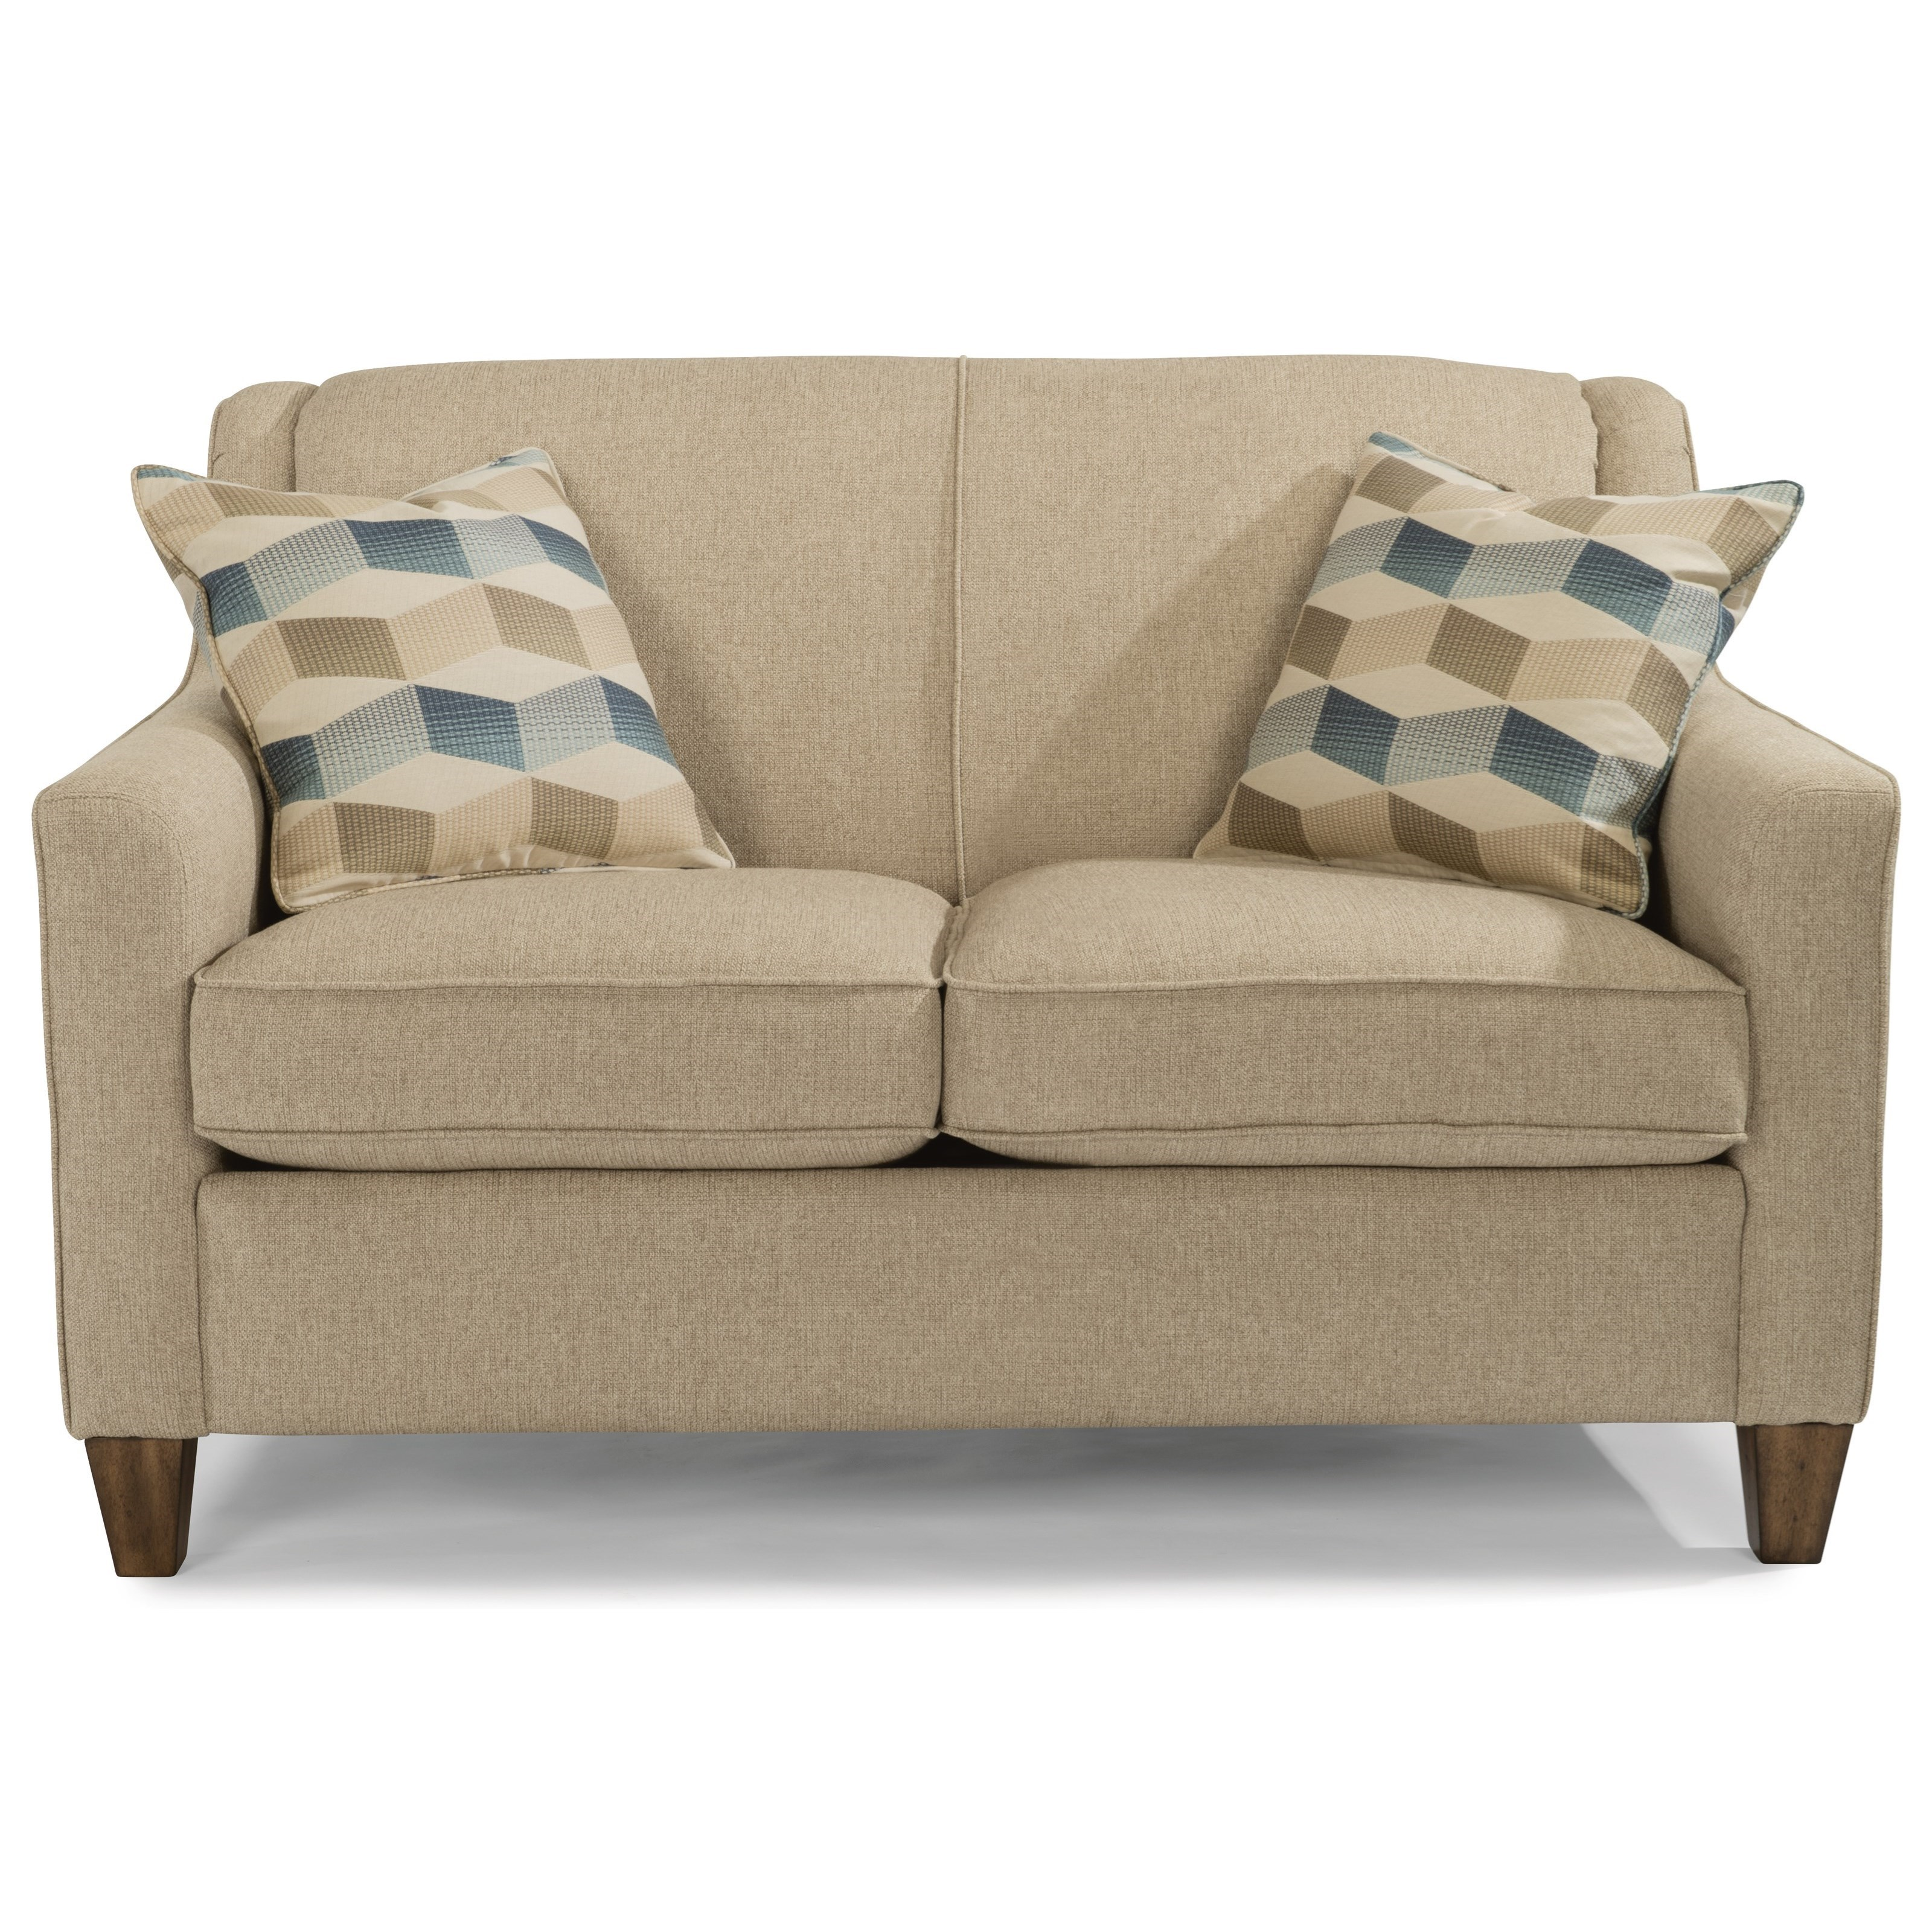 Flexsteel Holly Contemporary Love Seat With Welt Cording